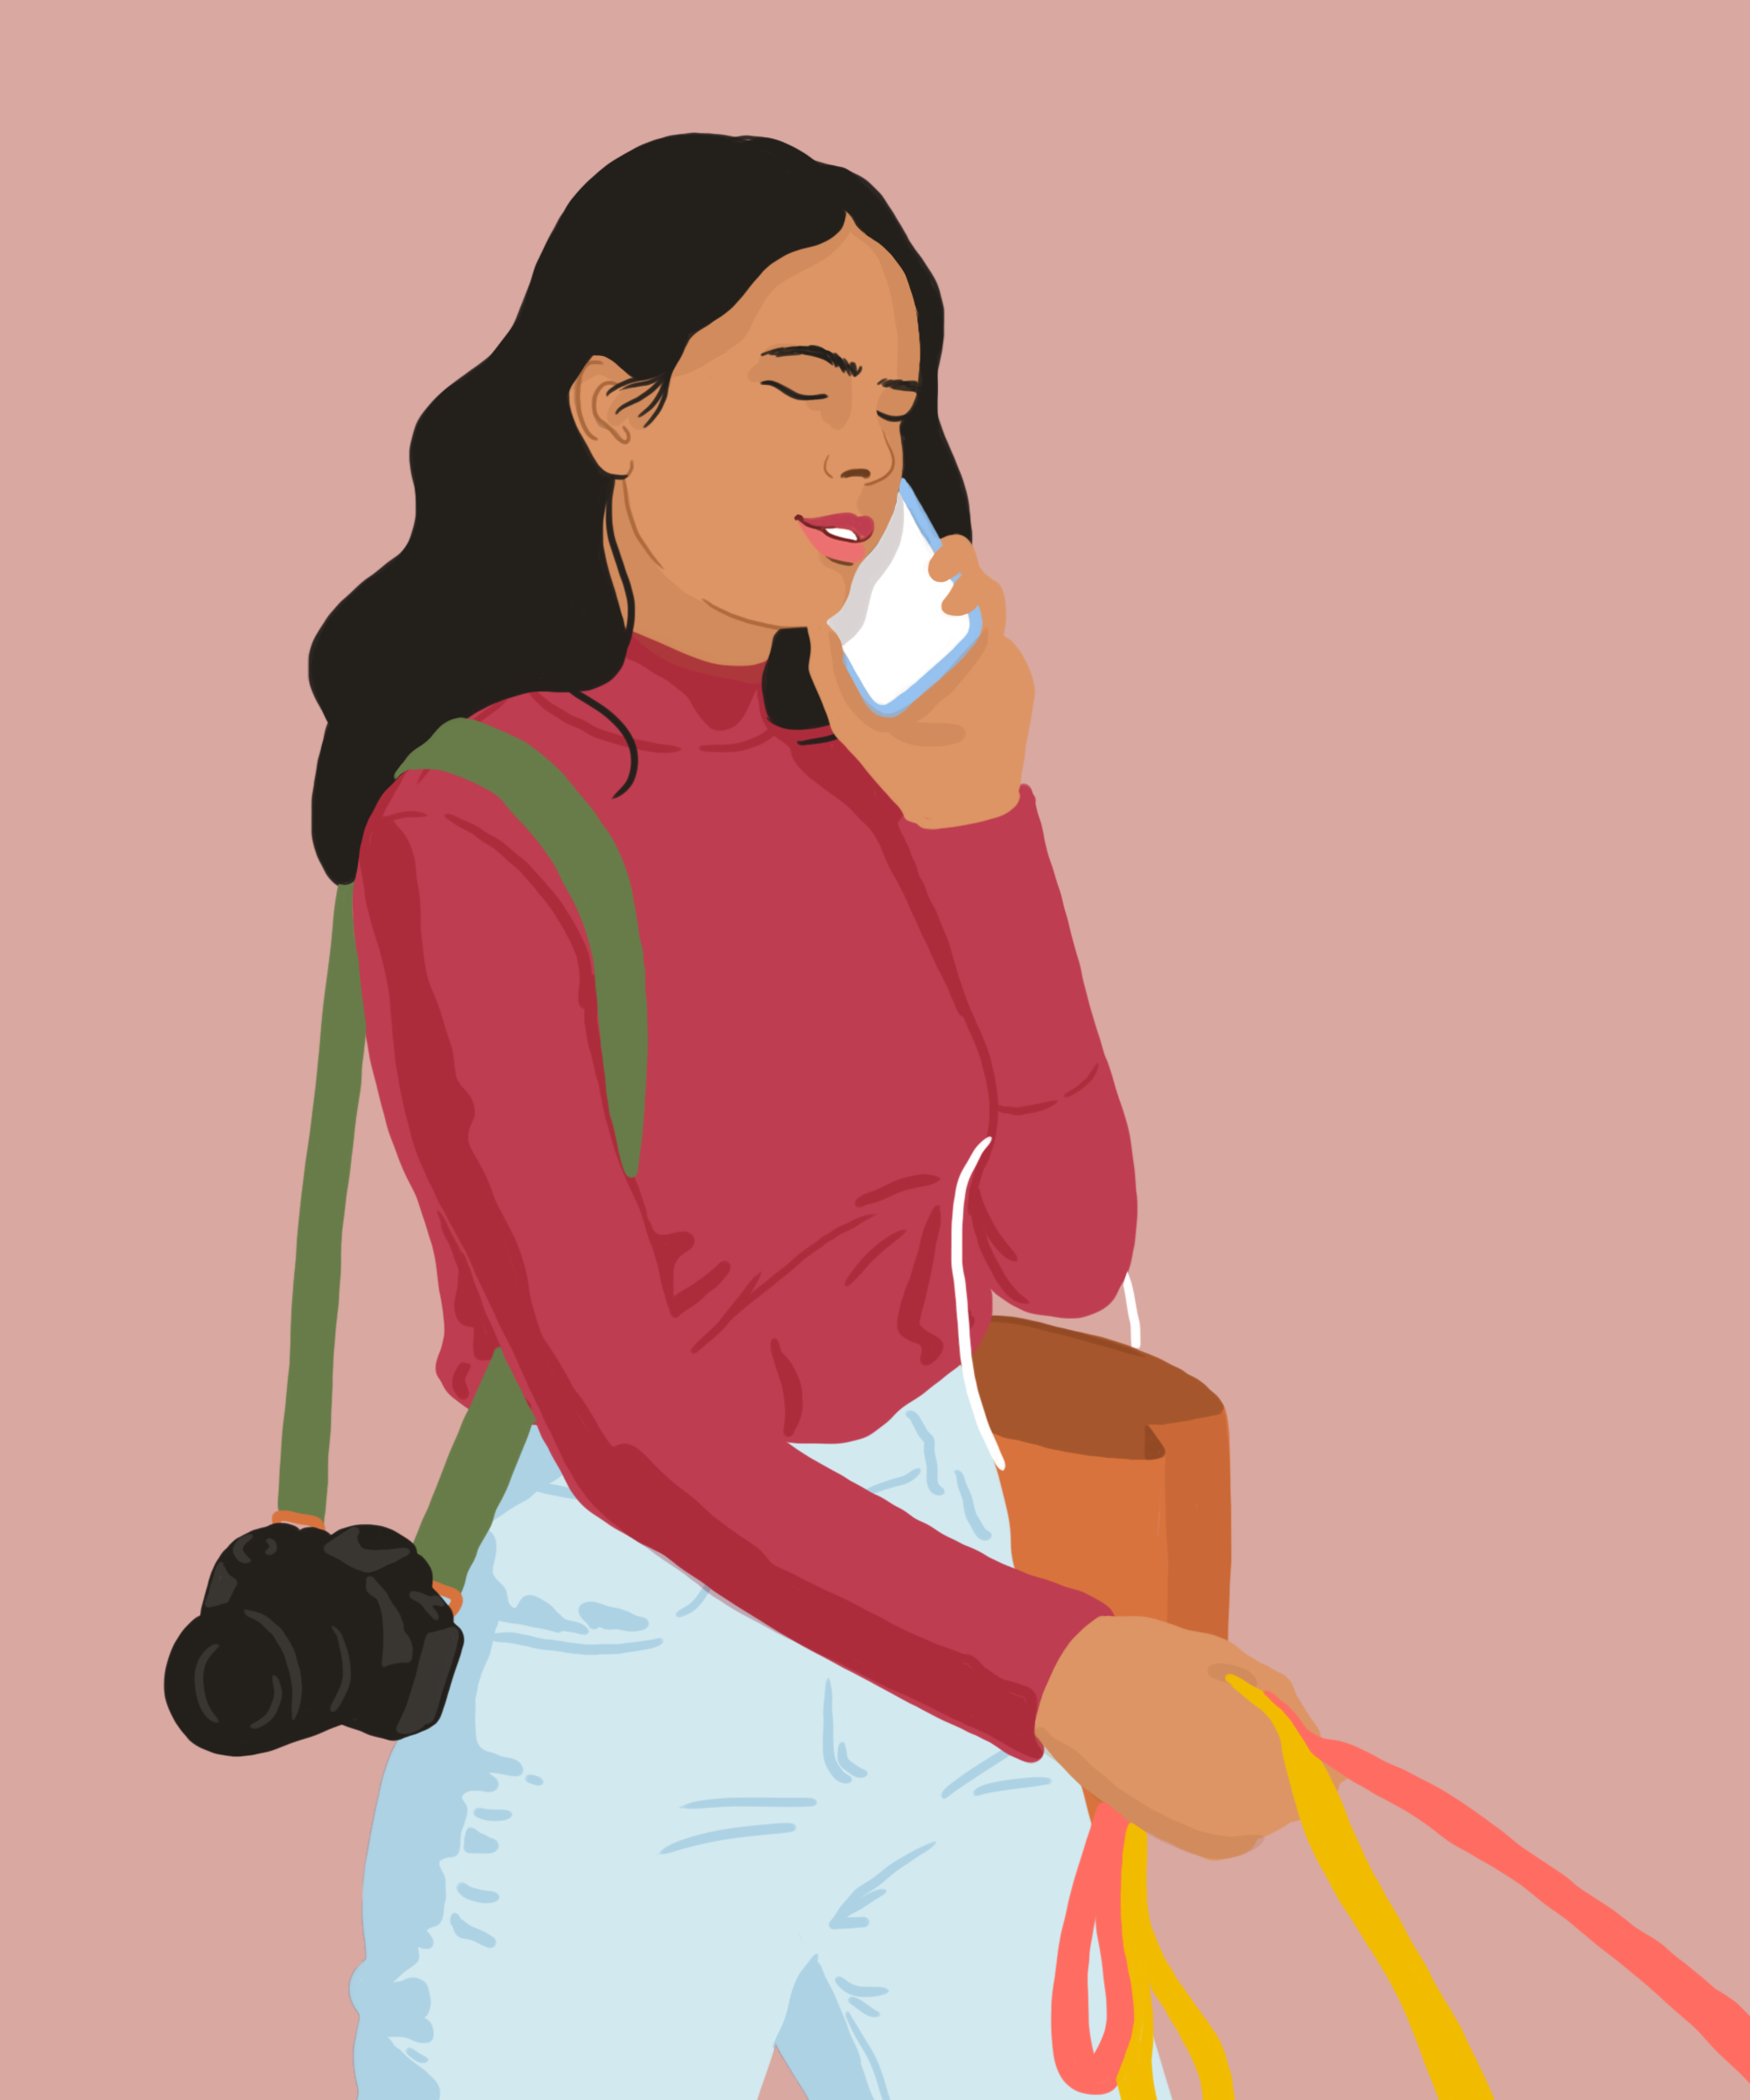 So You Want To Start A Side Hustle? Here's Everything You Need To Know